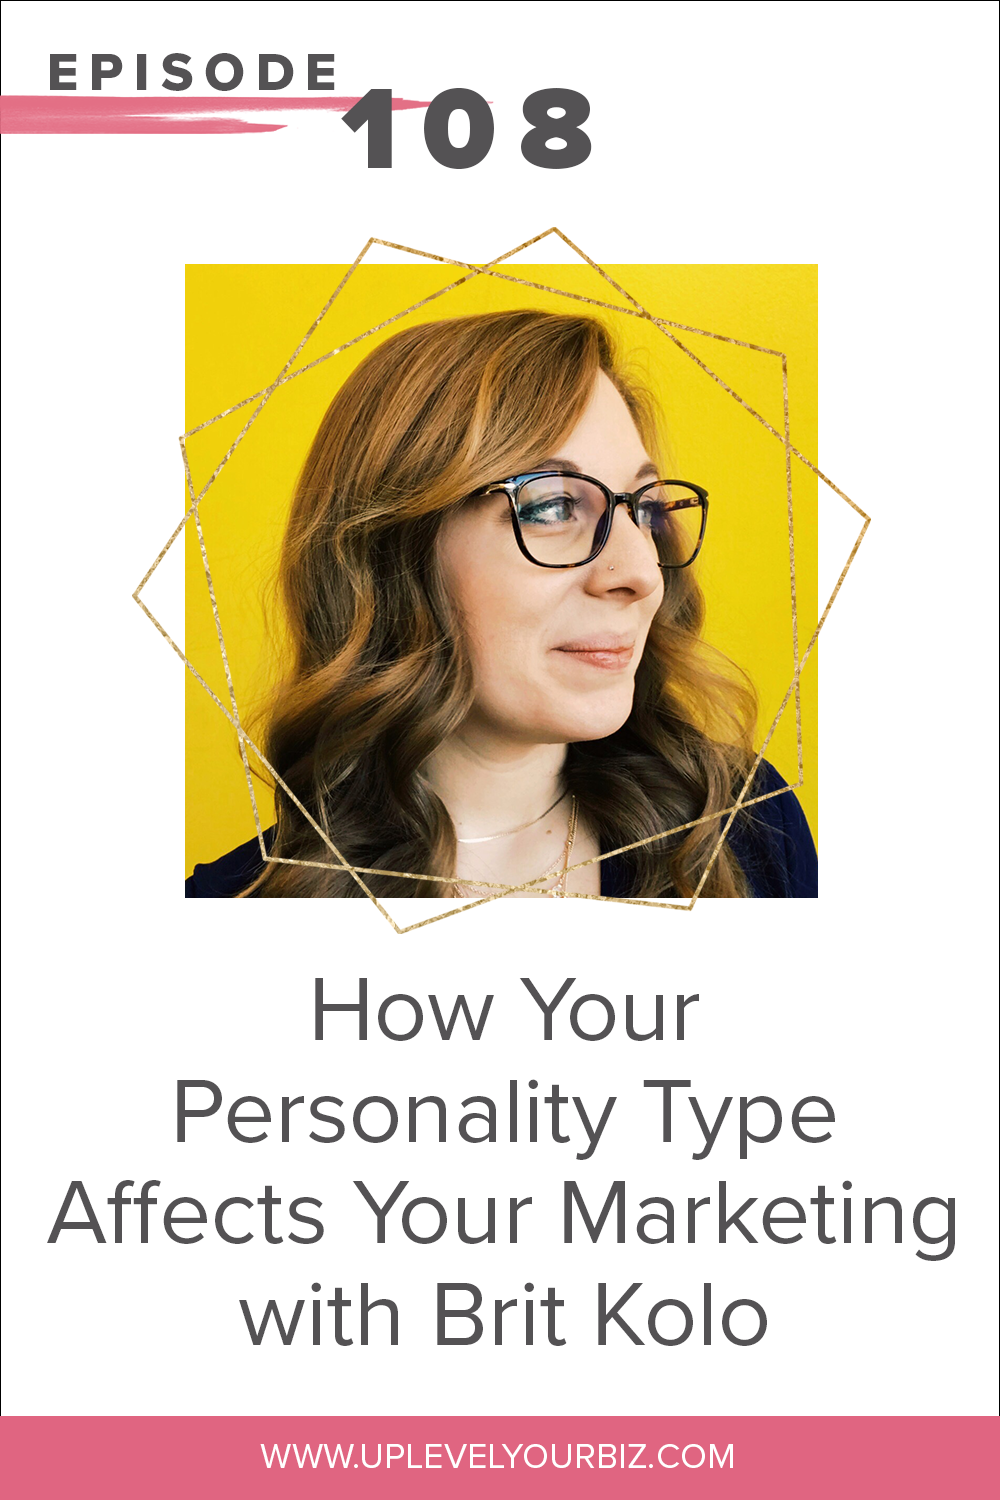 Episode 108 | How Your Personality Type Affects Your Marketing with Brit Kolo